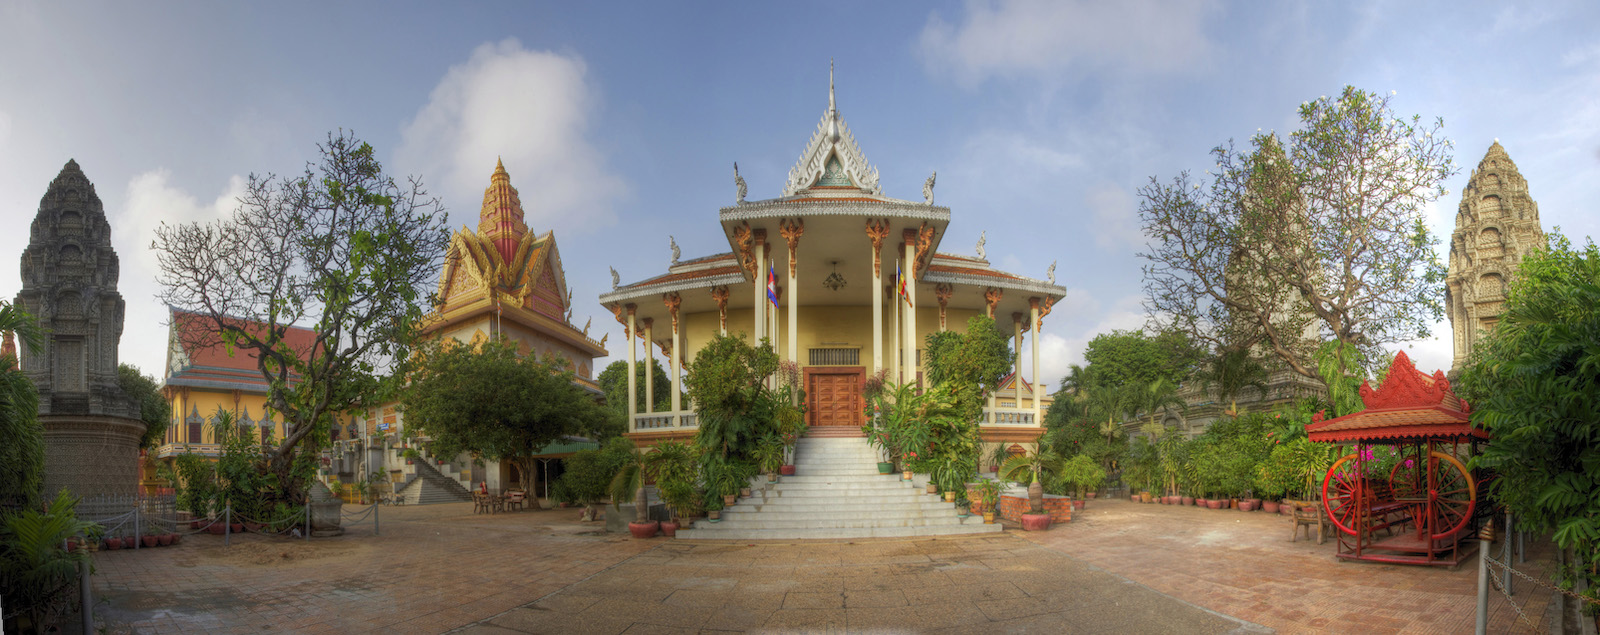 Wide view of temples in Cambodian capital